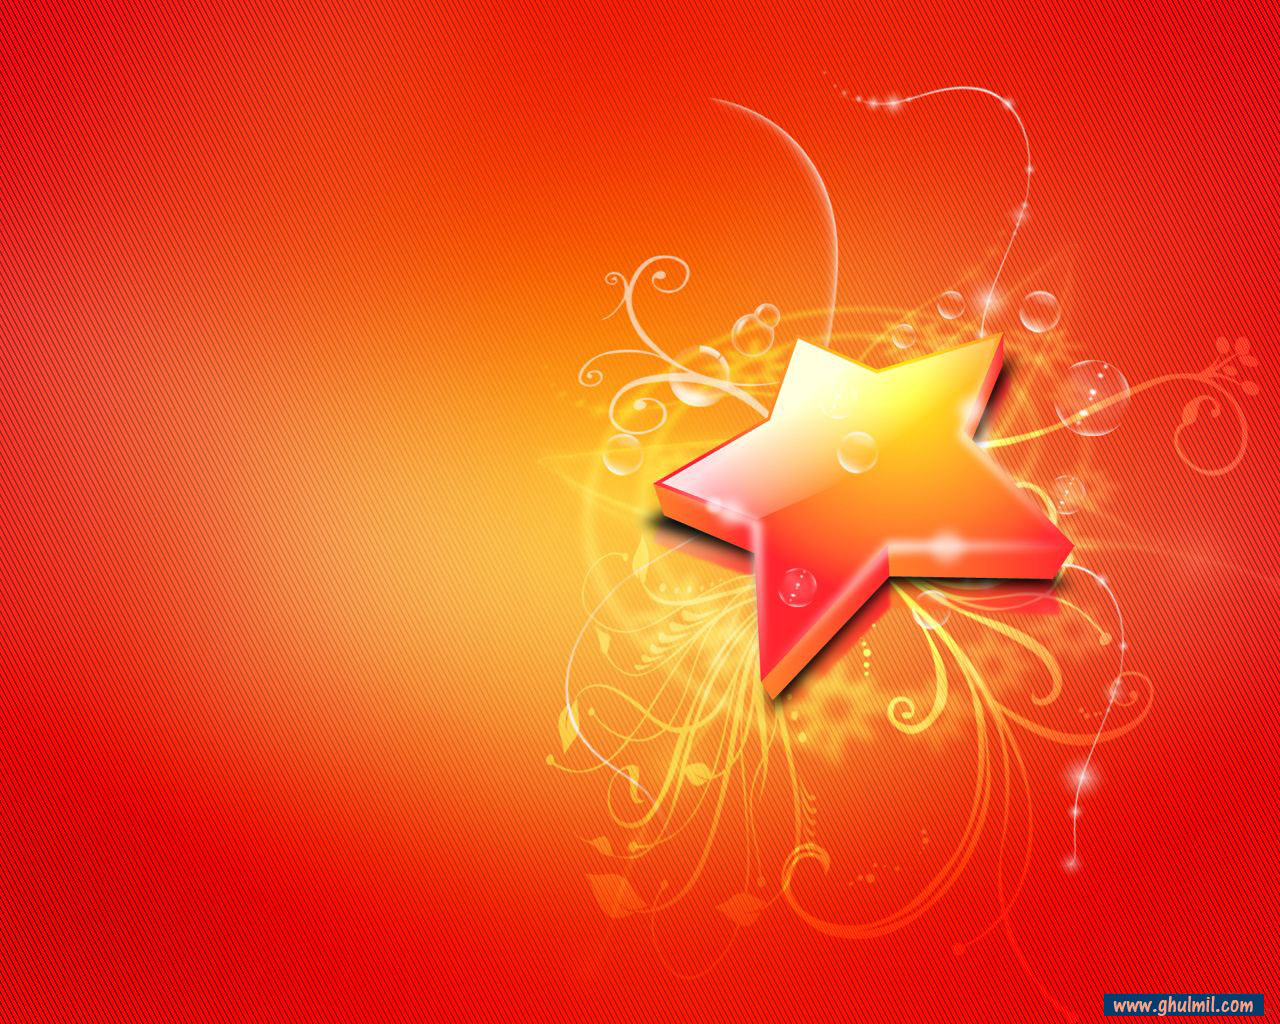 stars wallpapers backgrounds images - photo #48